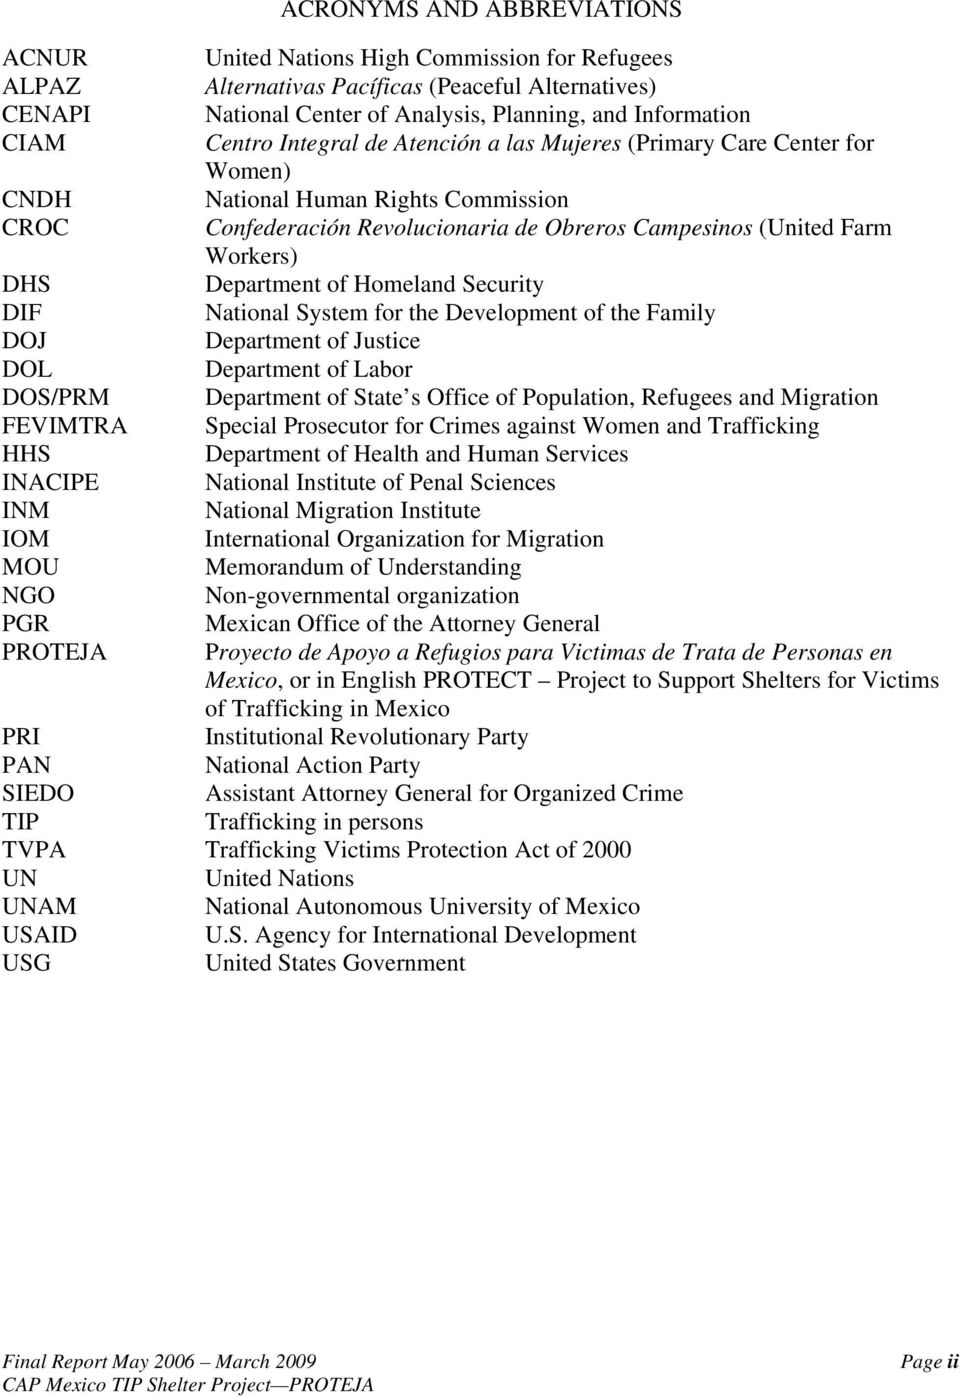 Department of Homeland Security DIF National System for the Development of the Family DOJ Department of Justice DOL Department of Labor DOS/PRM Department of State s Office of Population, Refugees